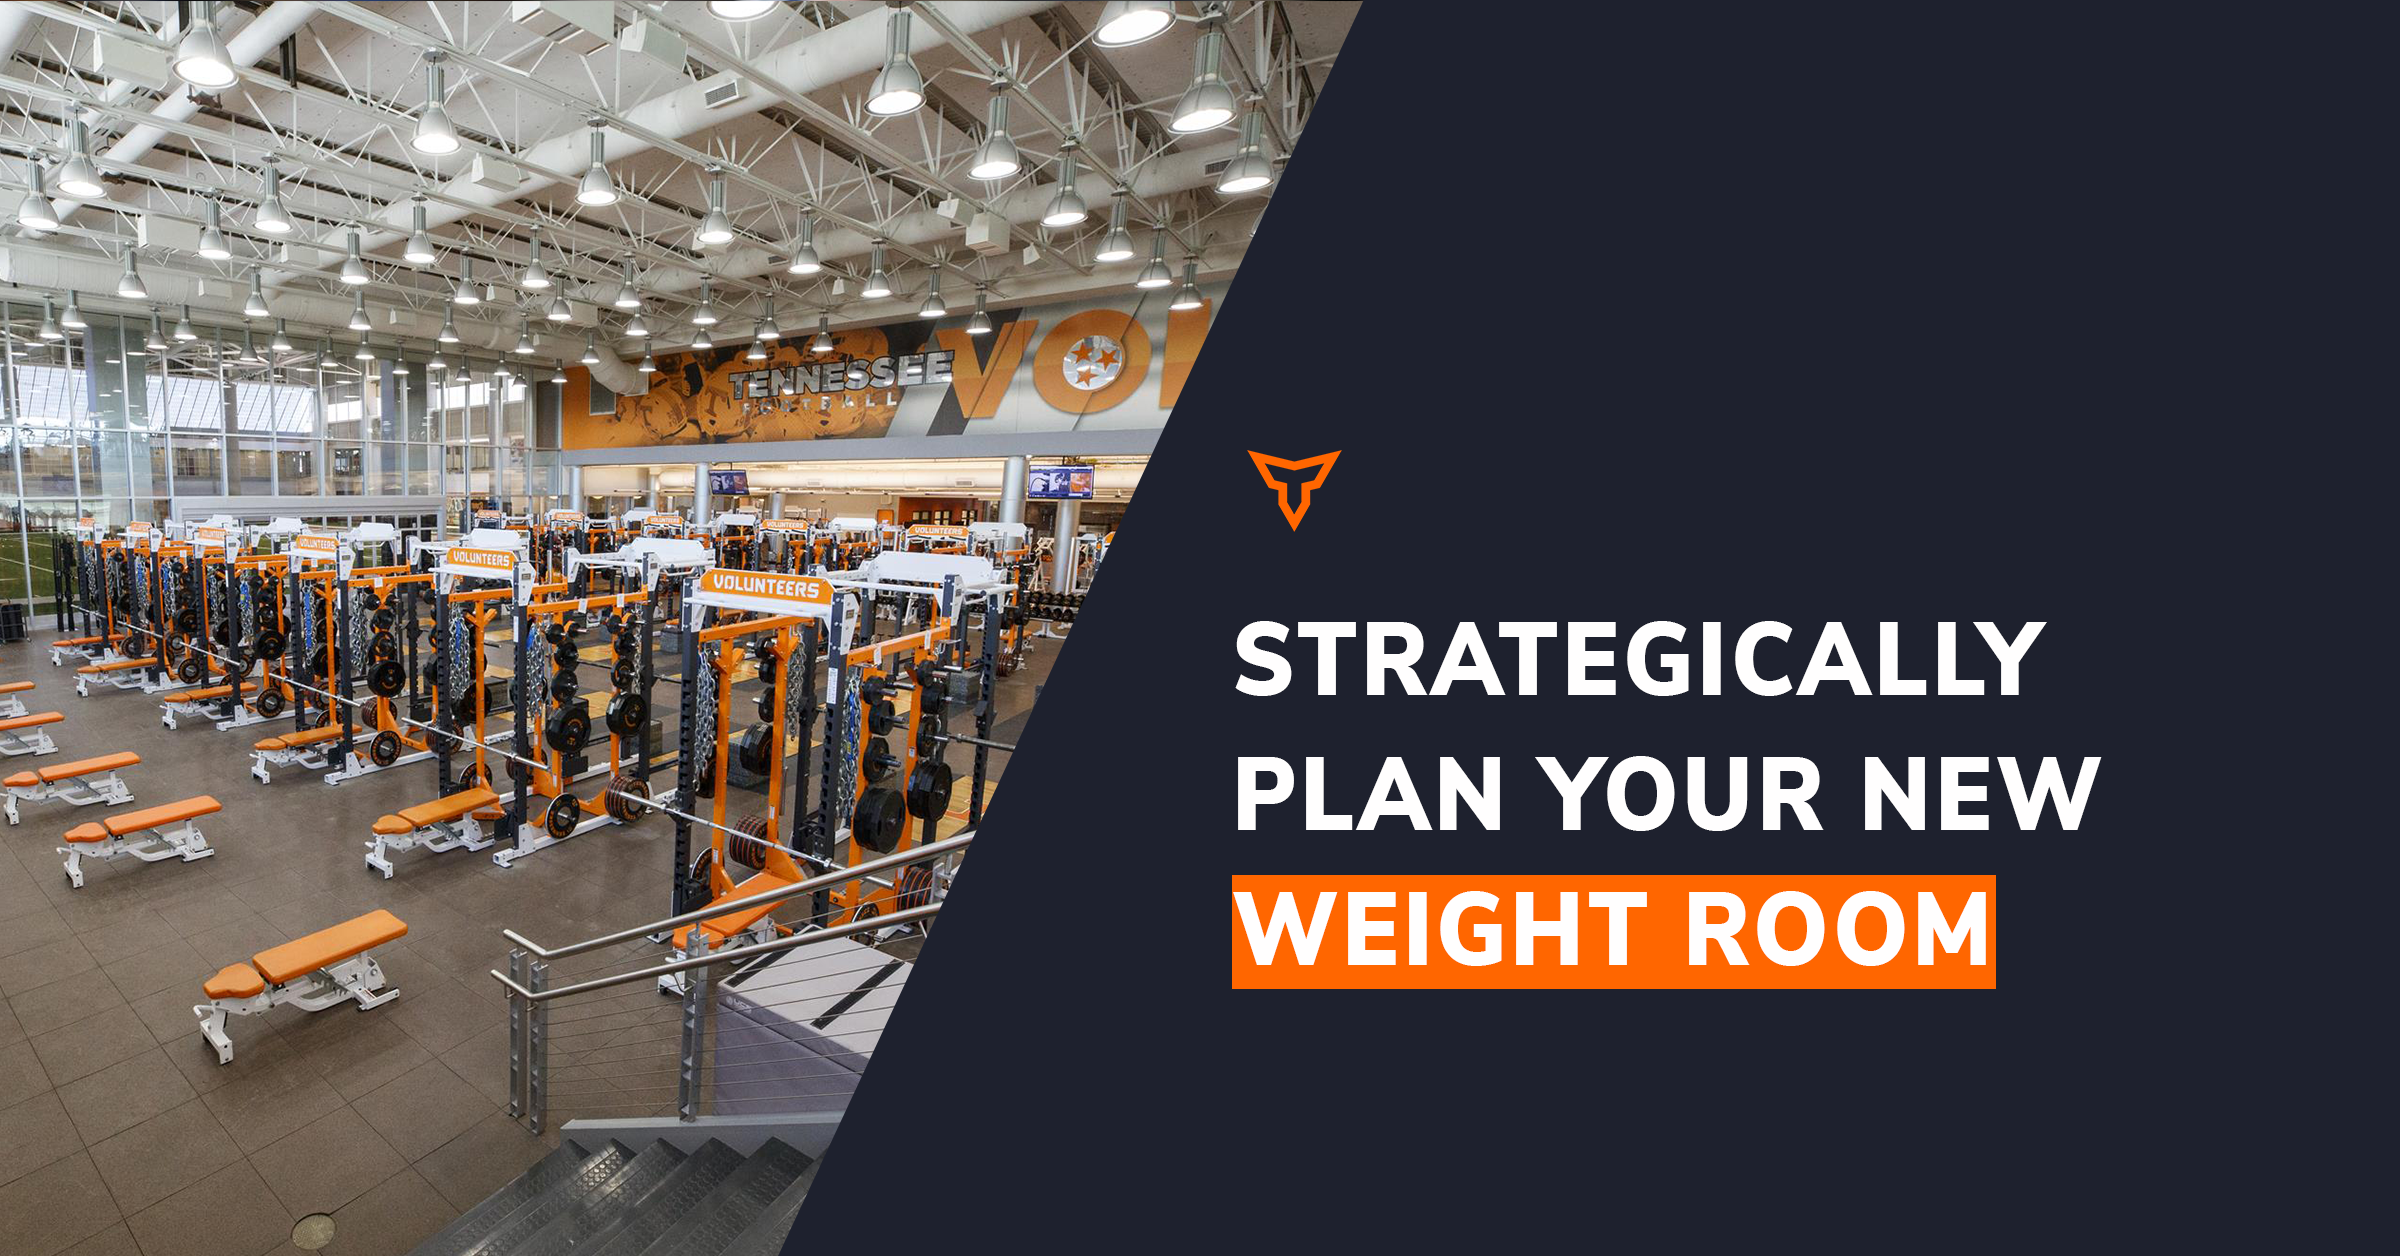 eBook plan weight room card